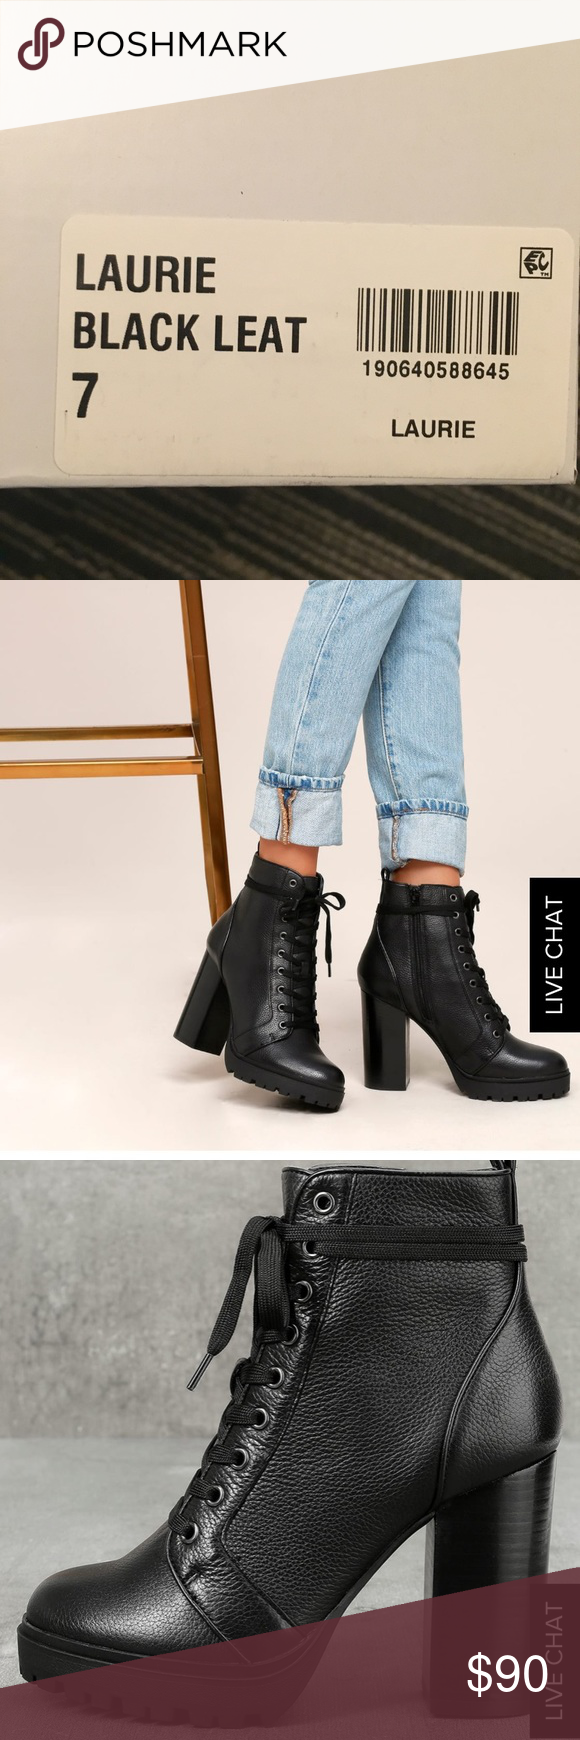 37dee4ad807 STEVE MADDEN LAURIE BOOTIE Size 7 - BRAND NEW! Steve Madden - Laurie ...